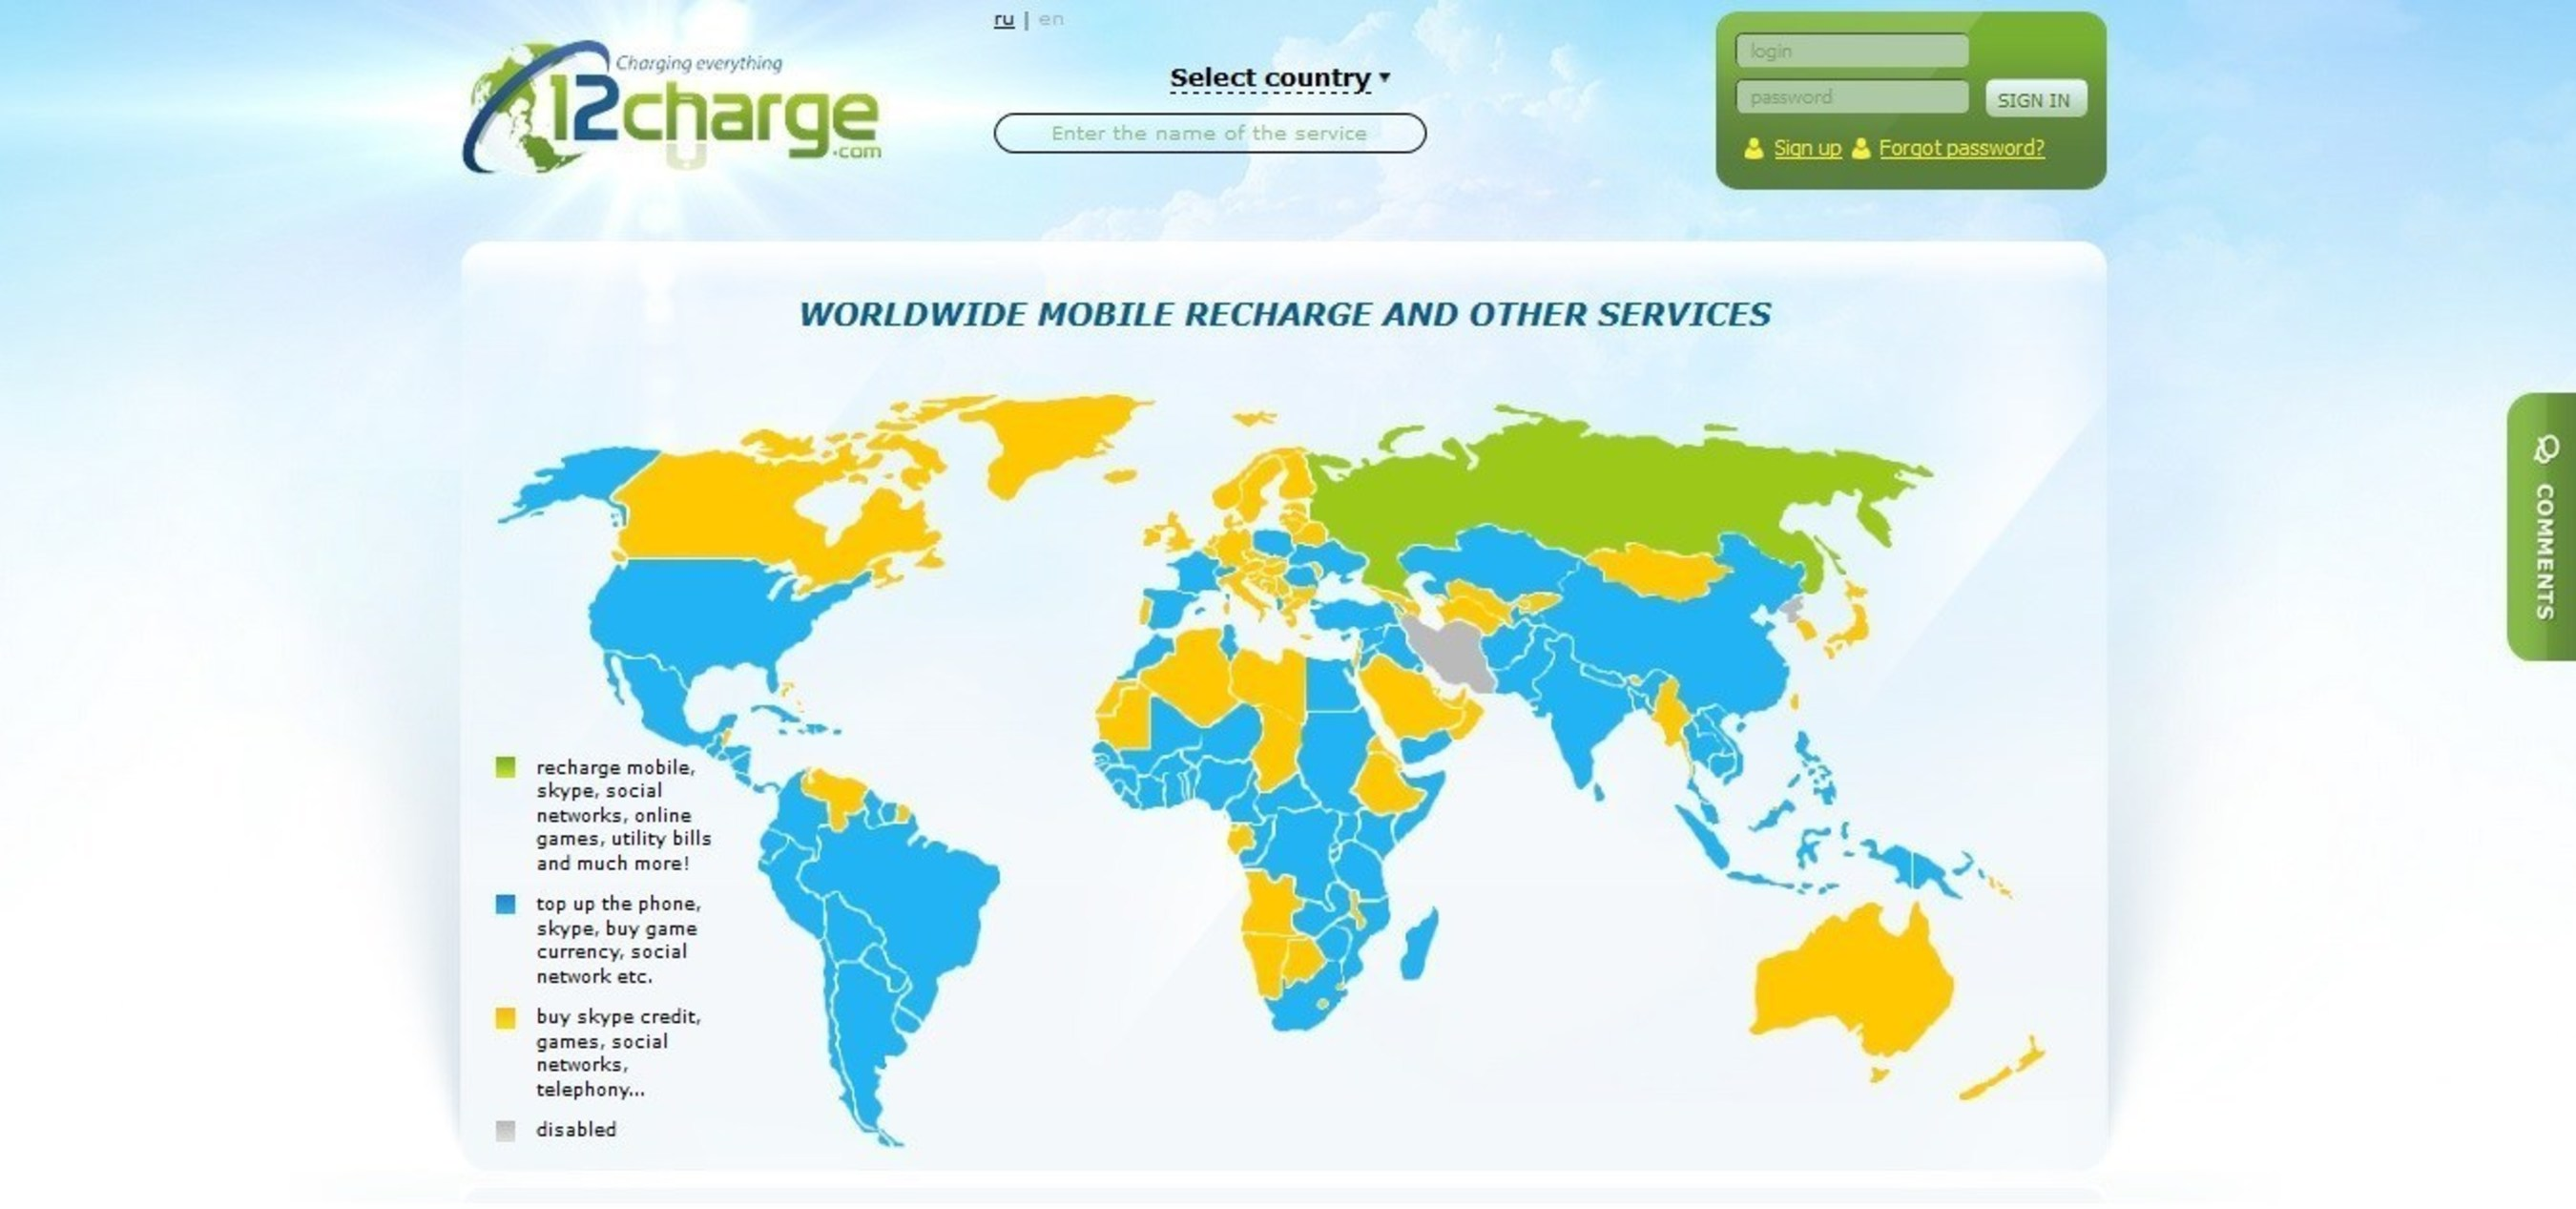 12charge.com Launches Worldwide Mobile Recharge With Bitcoin, Utility Bills Payments With